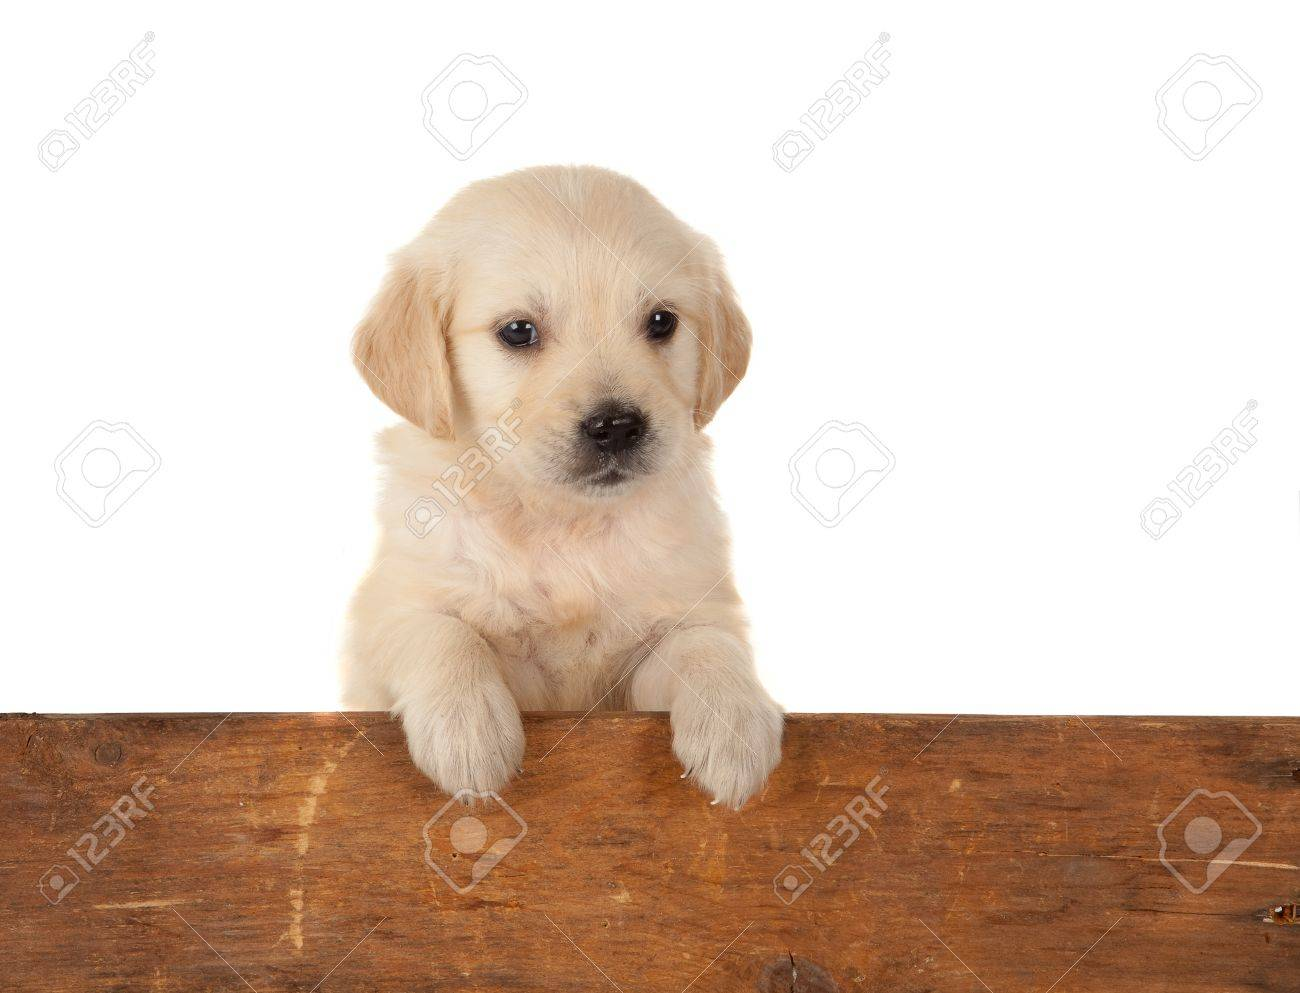 6 Weeks Old Golden Retriever Puppy Over A Wooden Fence Stock Photo